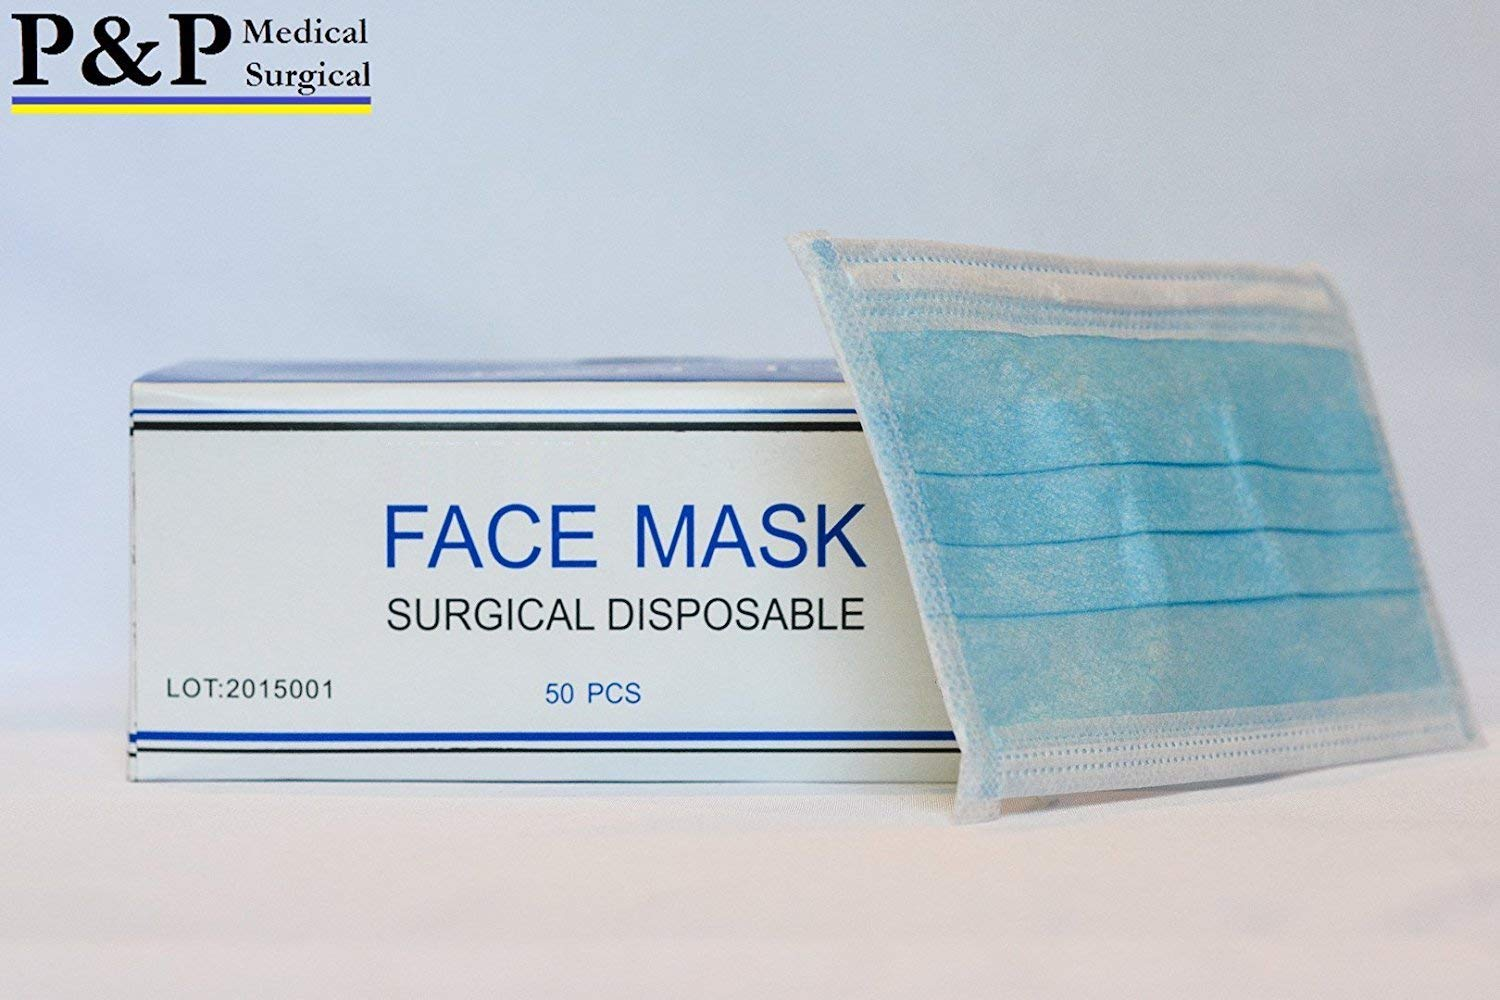 Disposable Medical Face Masks Sanitary Dental Surgical Hypoallergenic with Elastic Ear Loops 3-Ply Thick Resistance to Fluid & Blood Cotton Filter for Pollen Allergies & Dust Box of 500 by P&P Medical Surgical